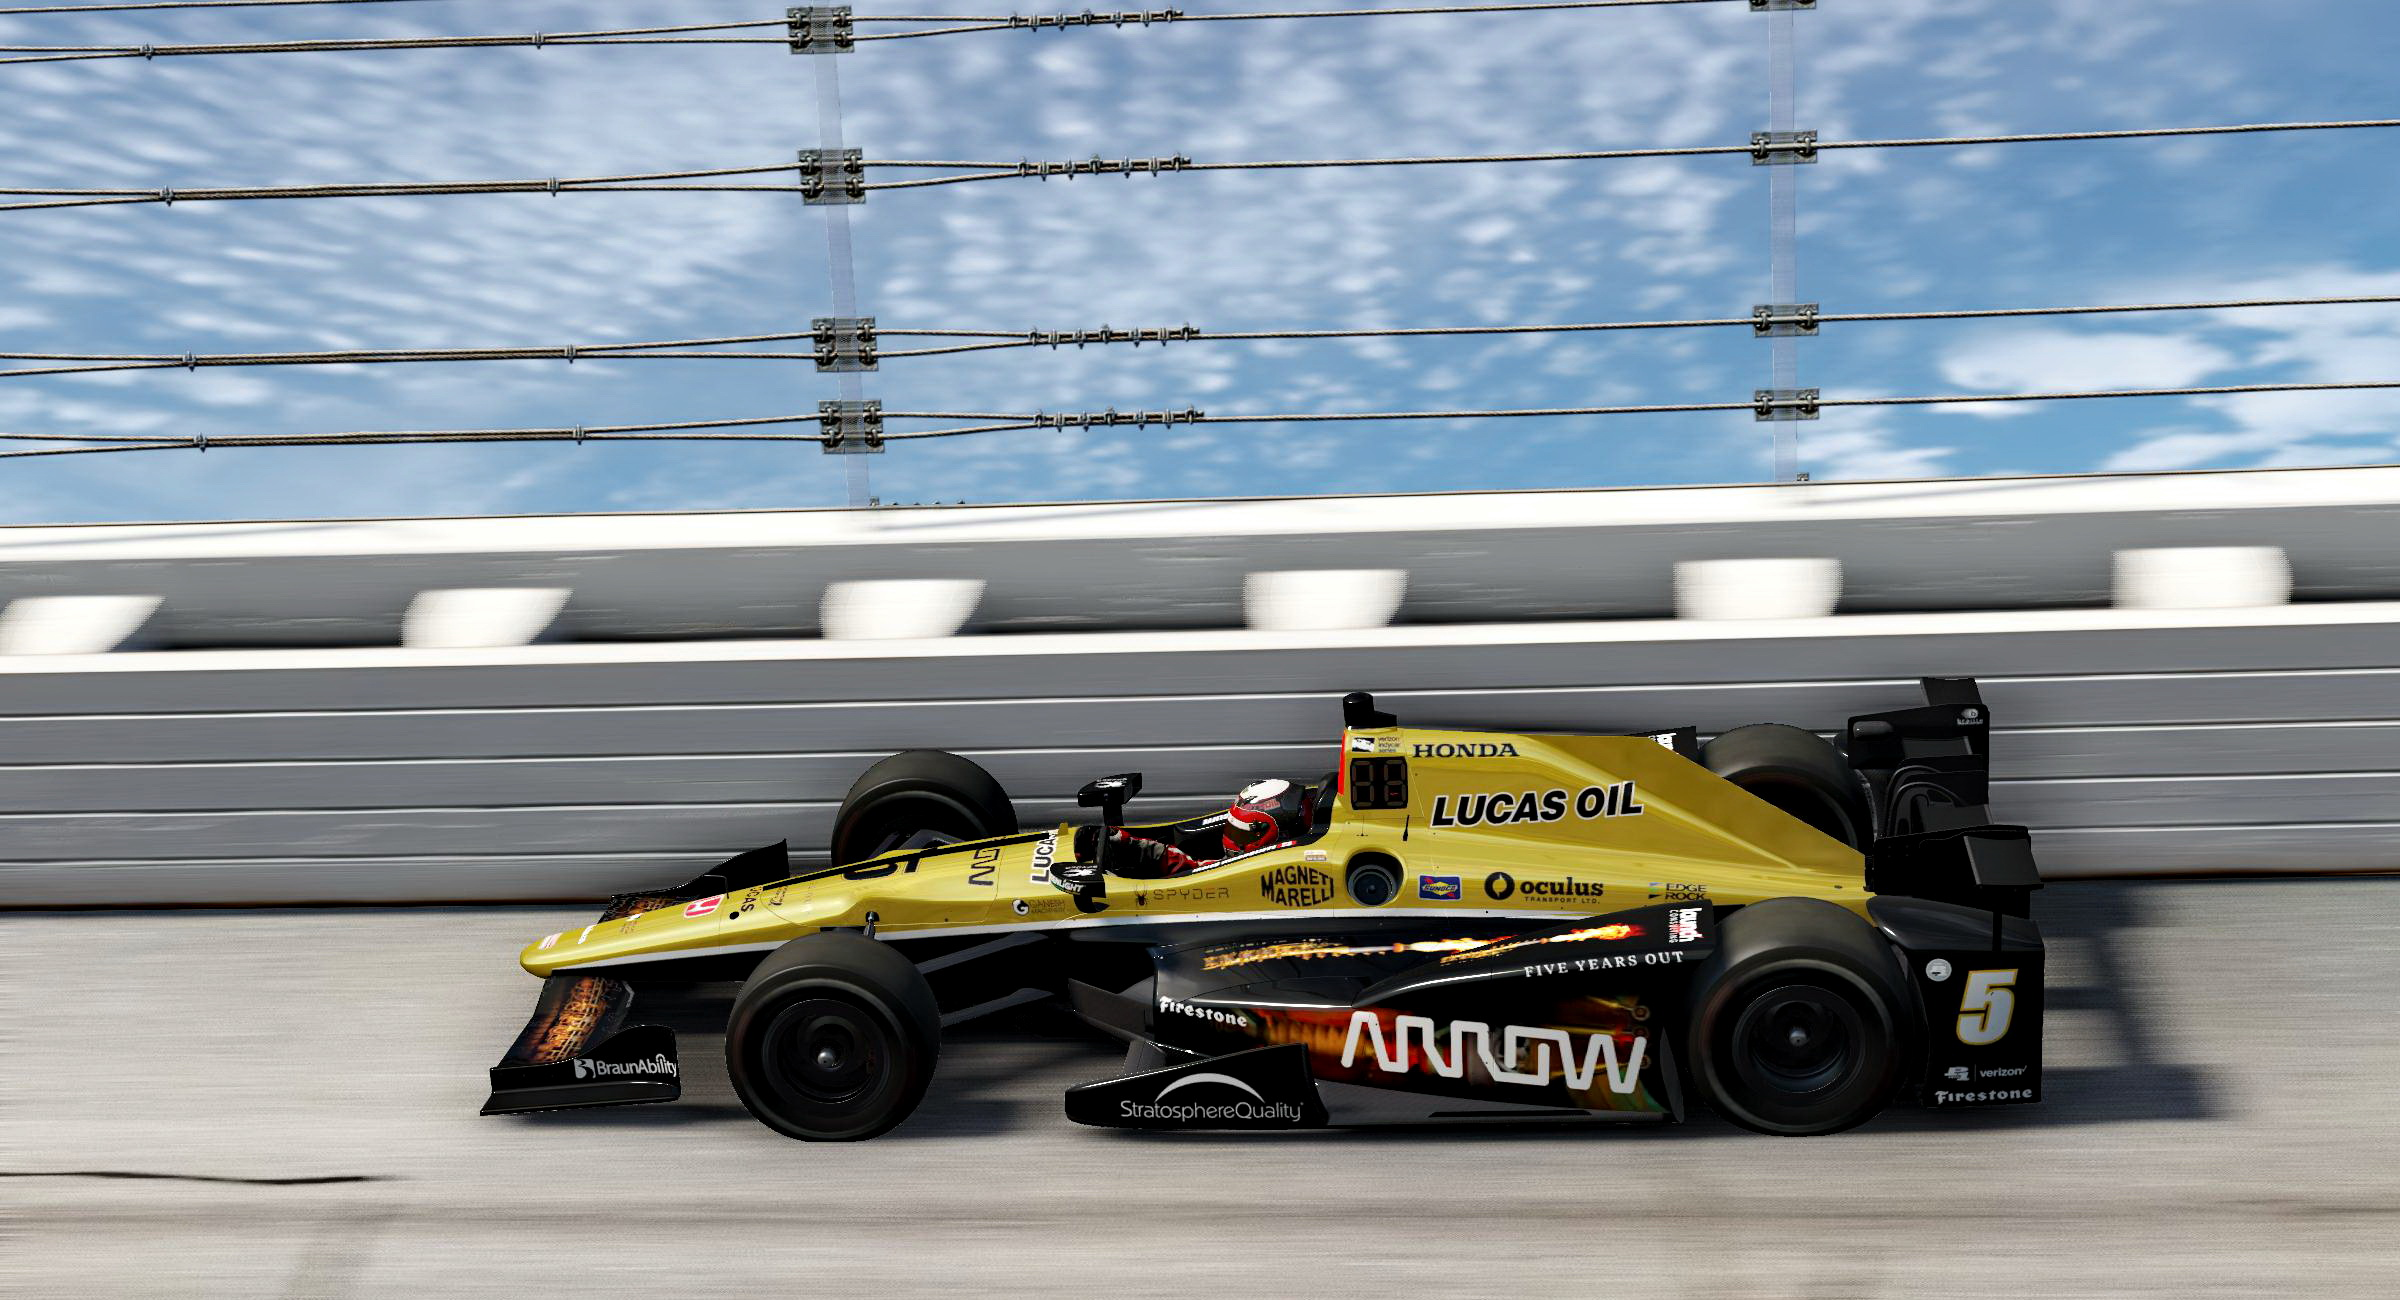 'Lucas Oil' Dallara Honda_010.jpg